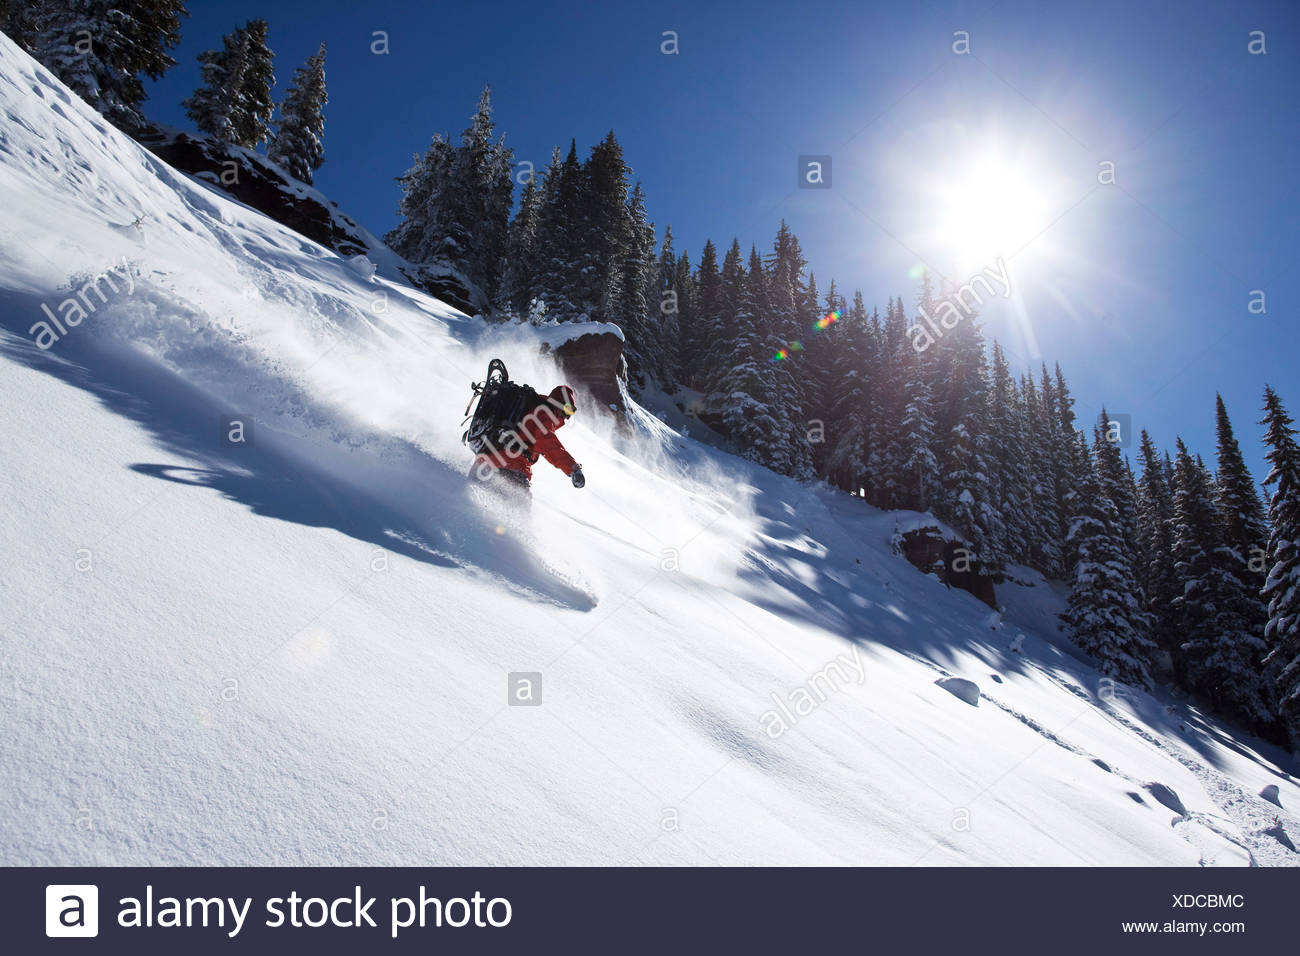 A athletic snowboarder rips fresh powder turns on a sunny day in Colorado. - Stock Image